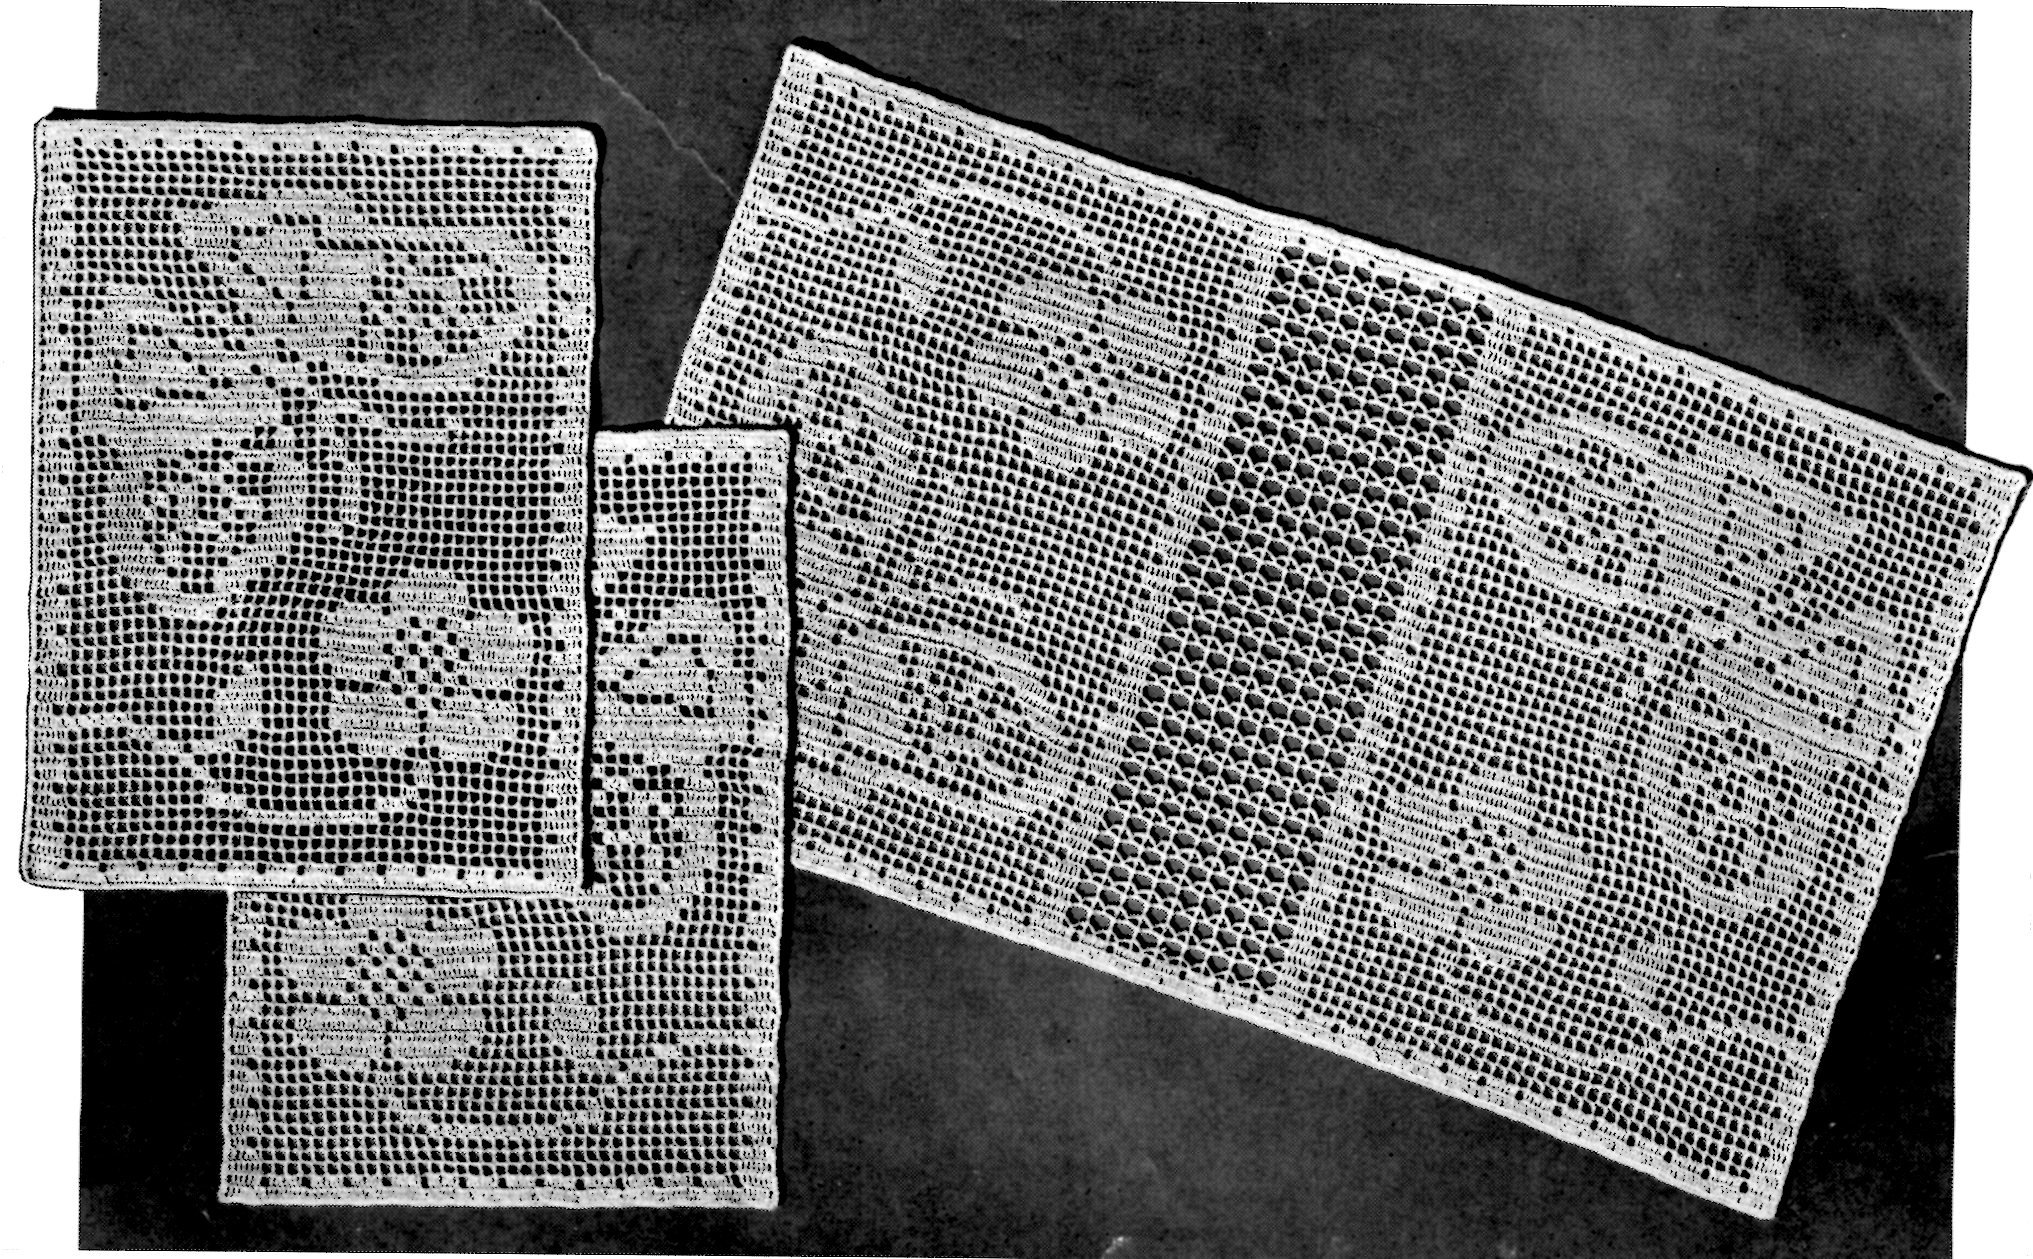 Filet crochet pattern and chart butterflies in the garden butterflies in the garden filet crochet pattern vintage crafts and more dt1010fo